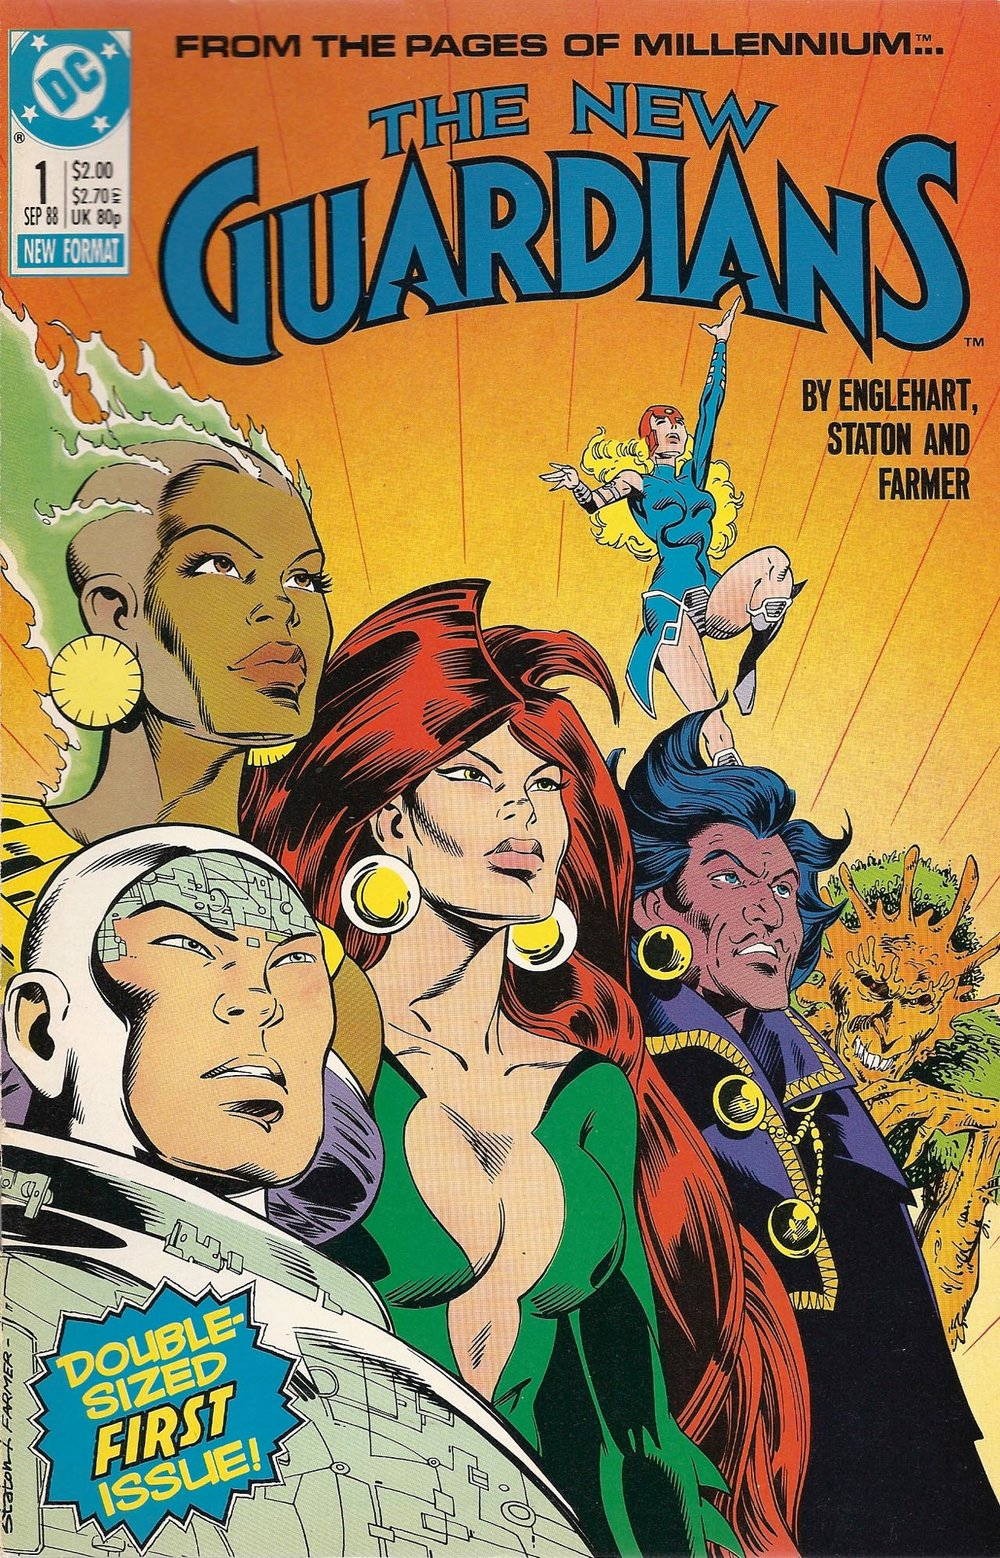 New Guardians (1988) #1, cover penciled by Joe Staton & inked by Mark Farmer.